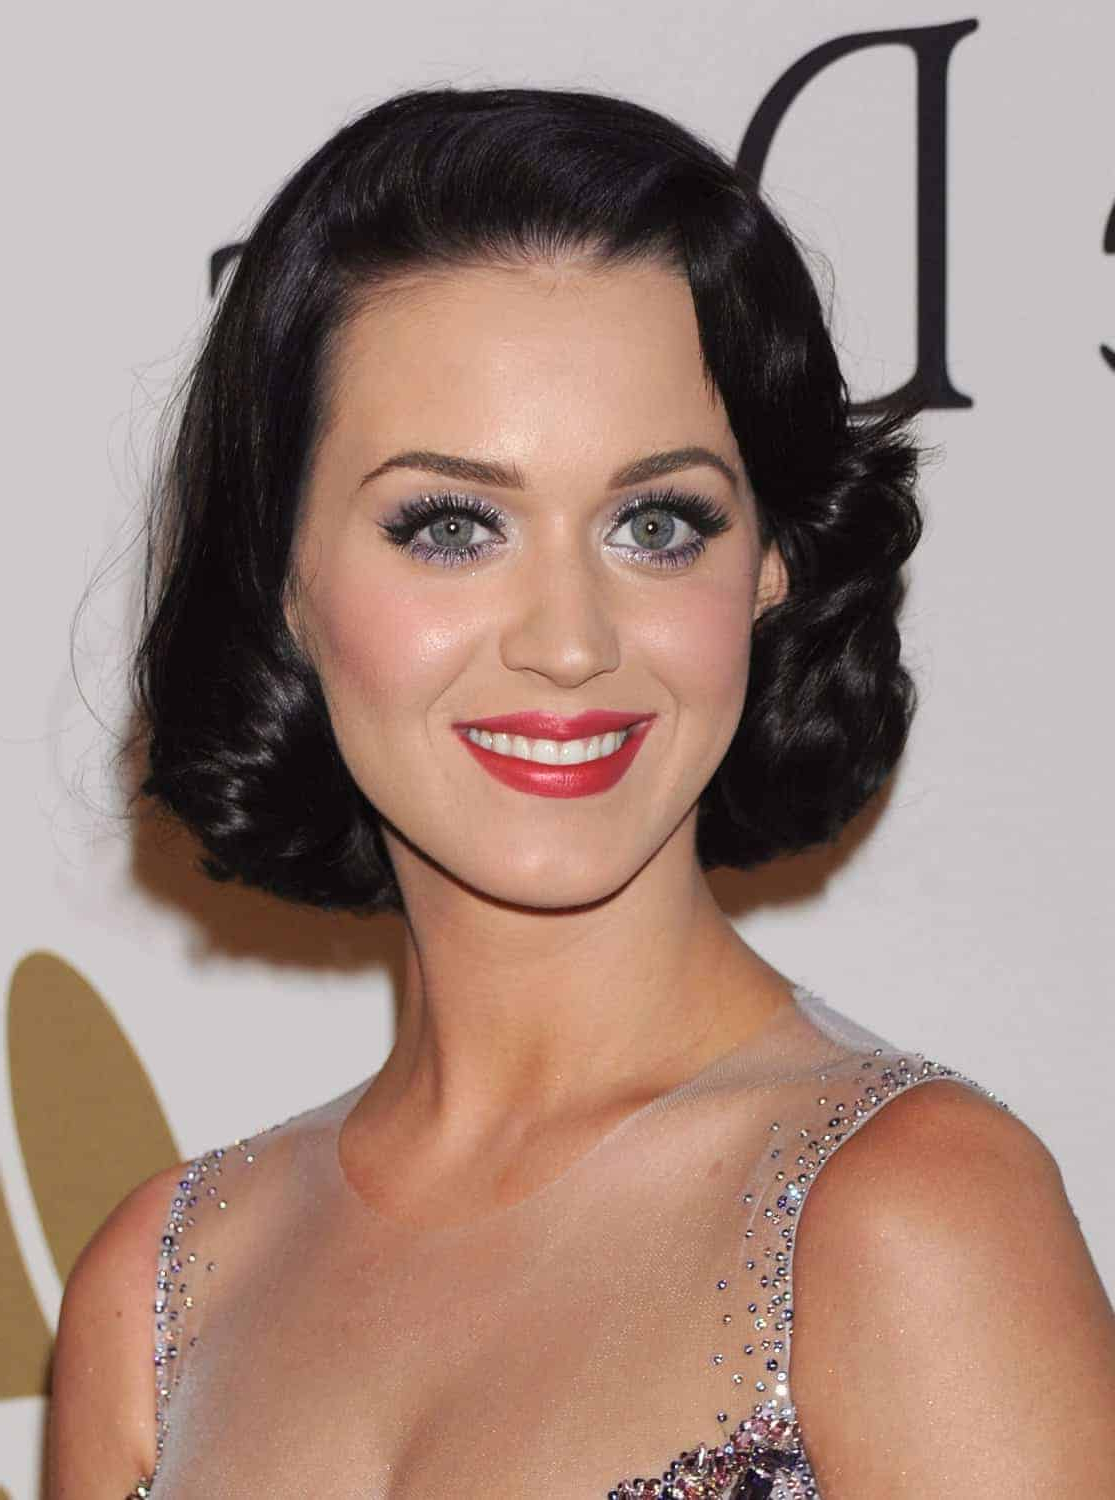 Retro Hairstyles For Beautiful Short Hair 2018 – Womenstyle Throughout Vintage Hairstyle For Short Hair (View 8 of 25)